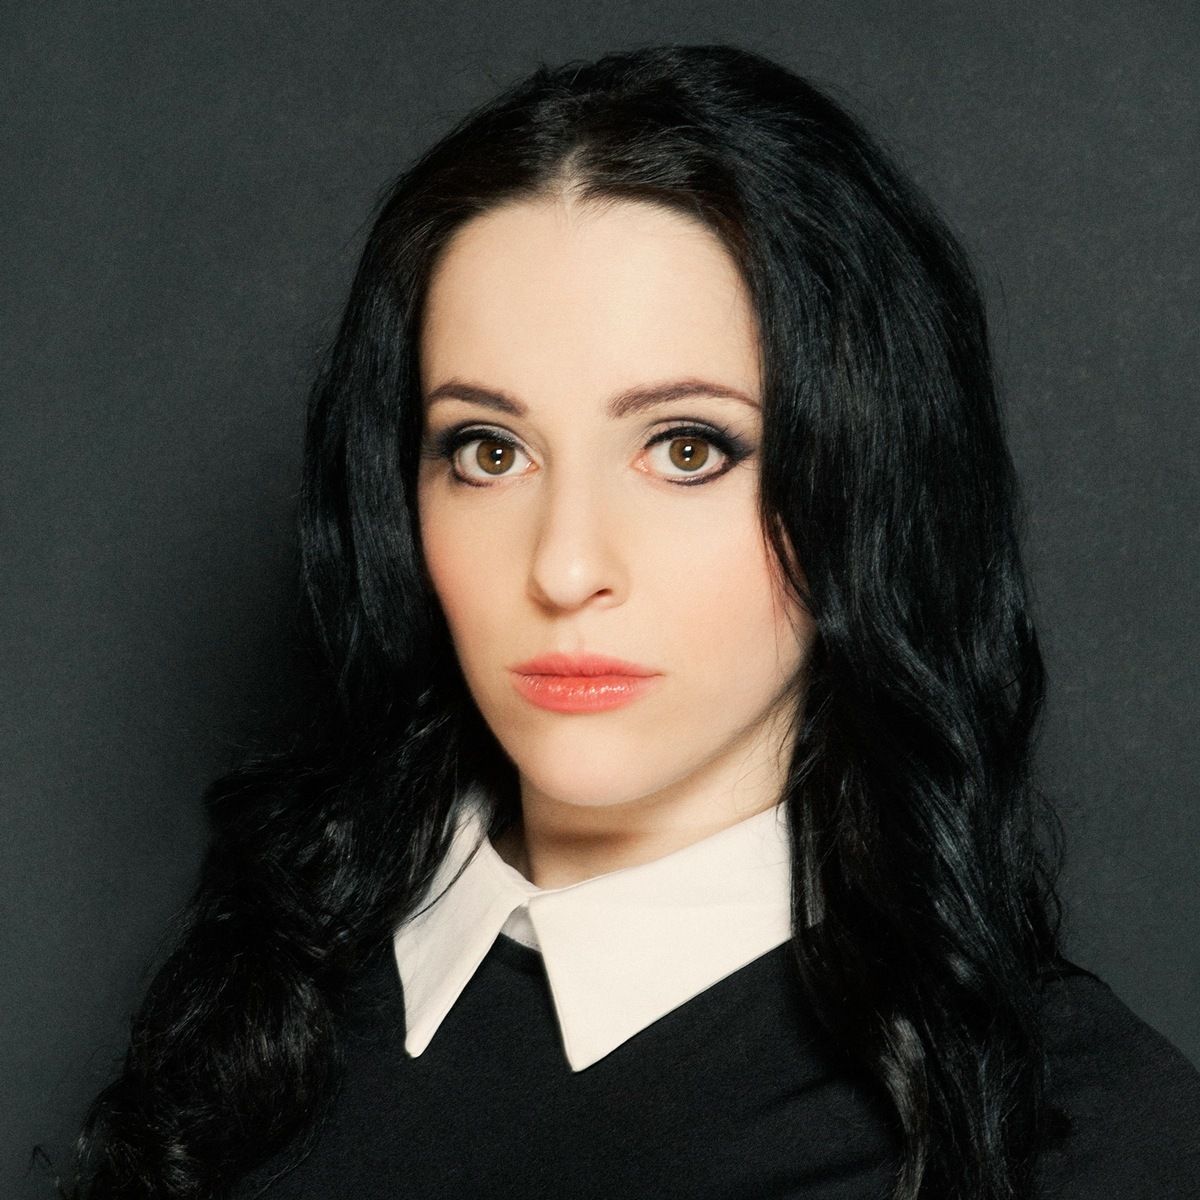 Interview with Molly Crabapple, artist and activist